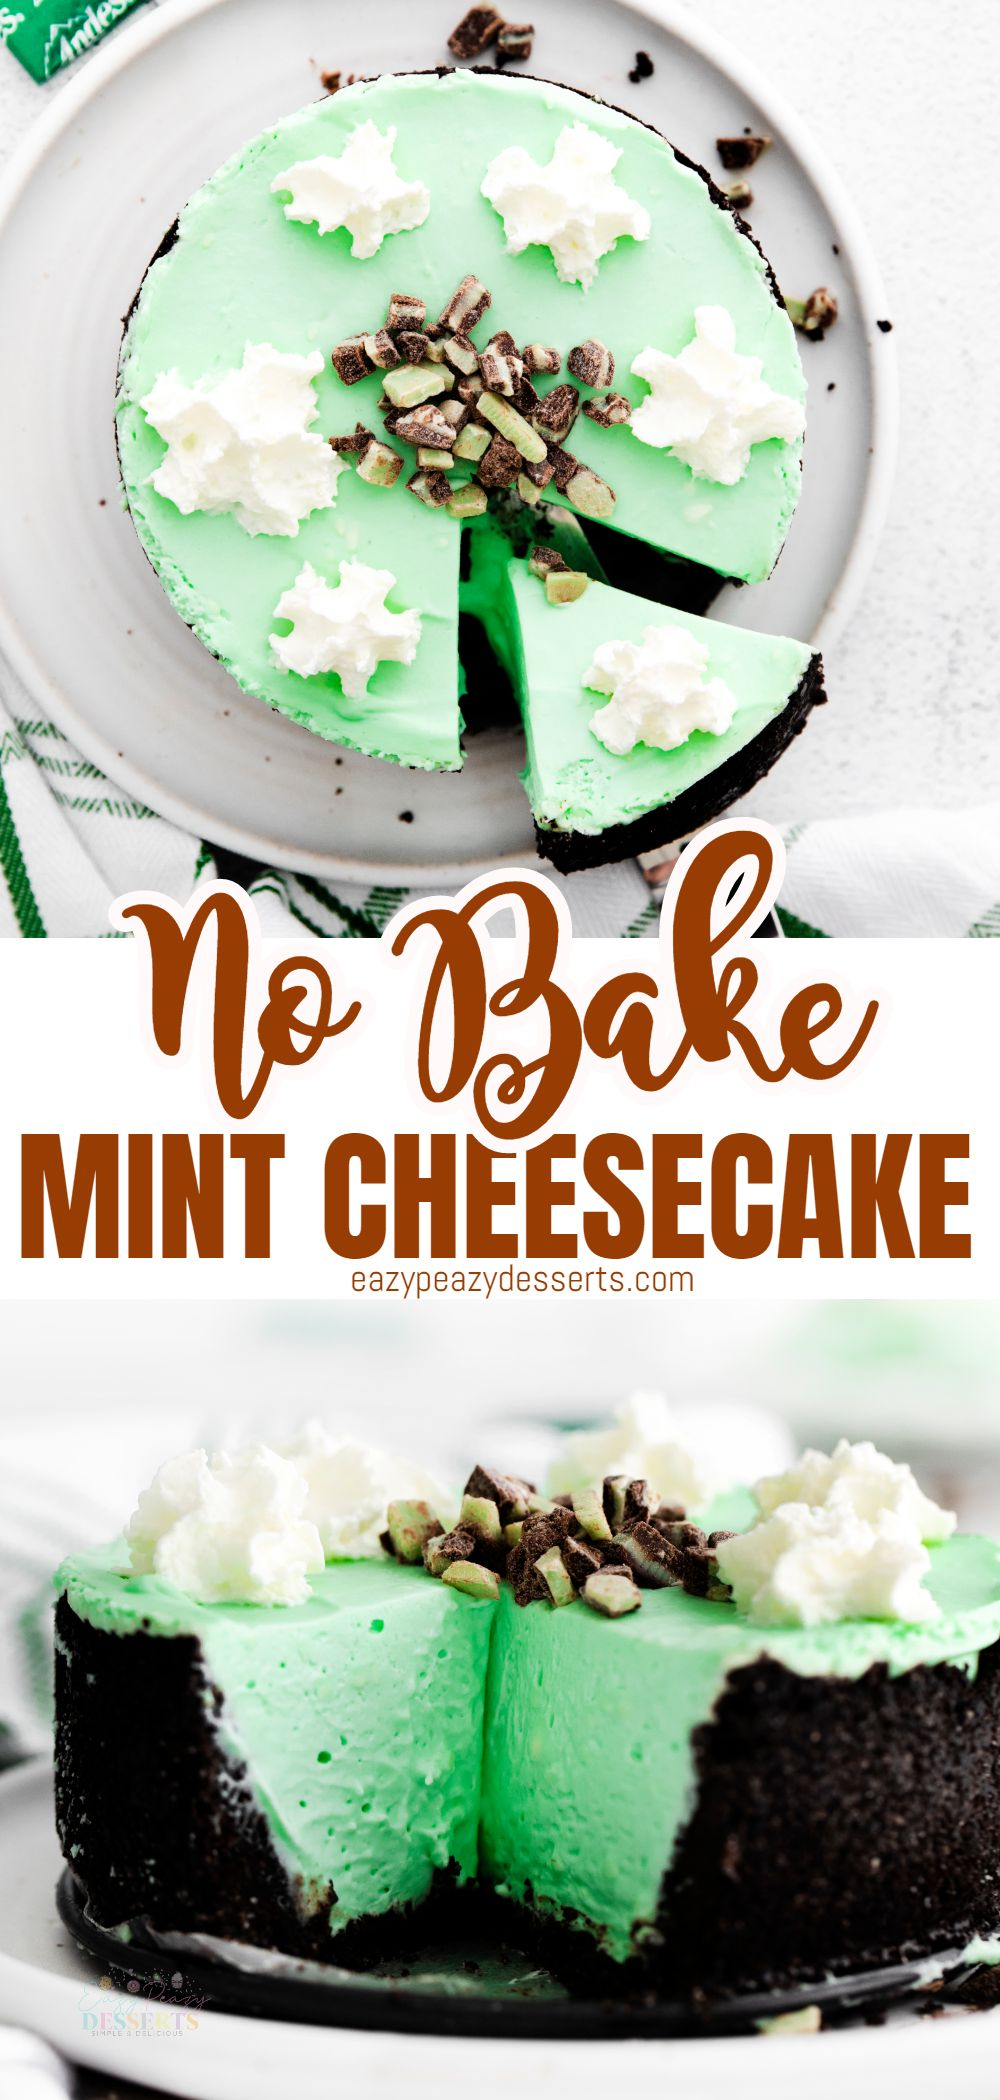 With a crumbly chocolate cookie crust and creamy filling, this green mint cheesecake is a refreshing treat perfect for any celebration. In addition to using the classic combination of chocolate and mint, you'll love the fun green color you get when mixing crème de menthe into a cheesecake. via @eazypeazydesserts